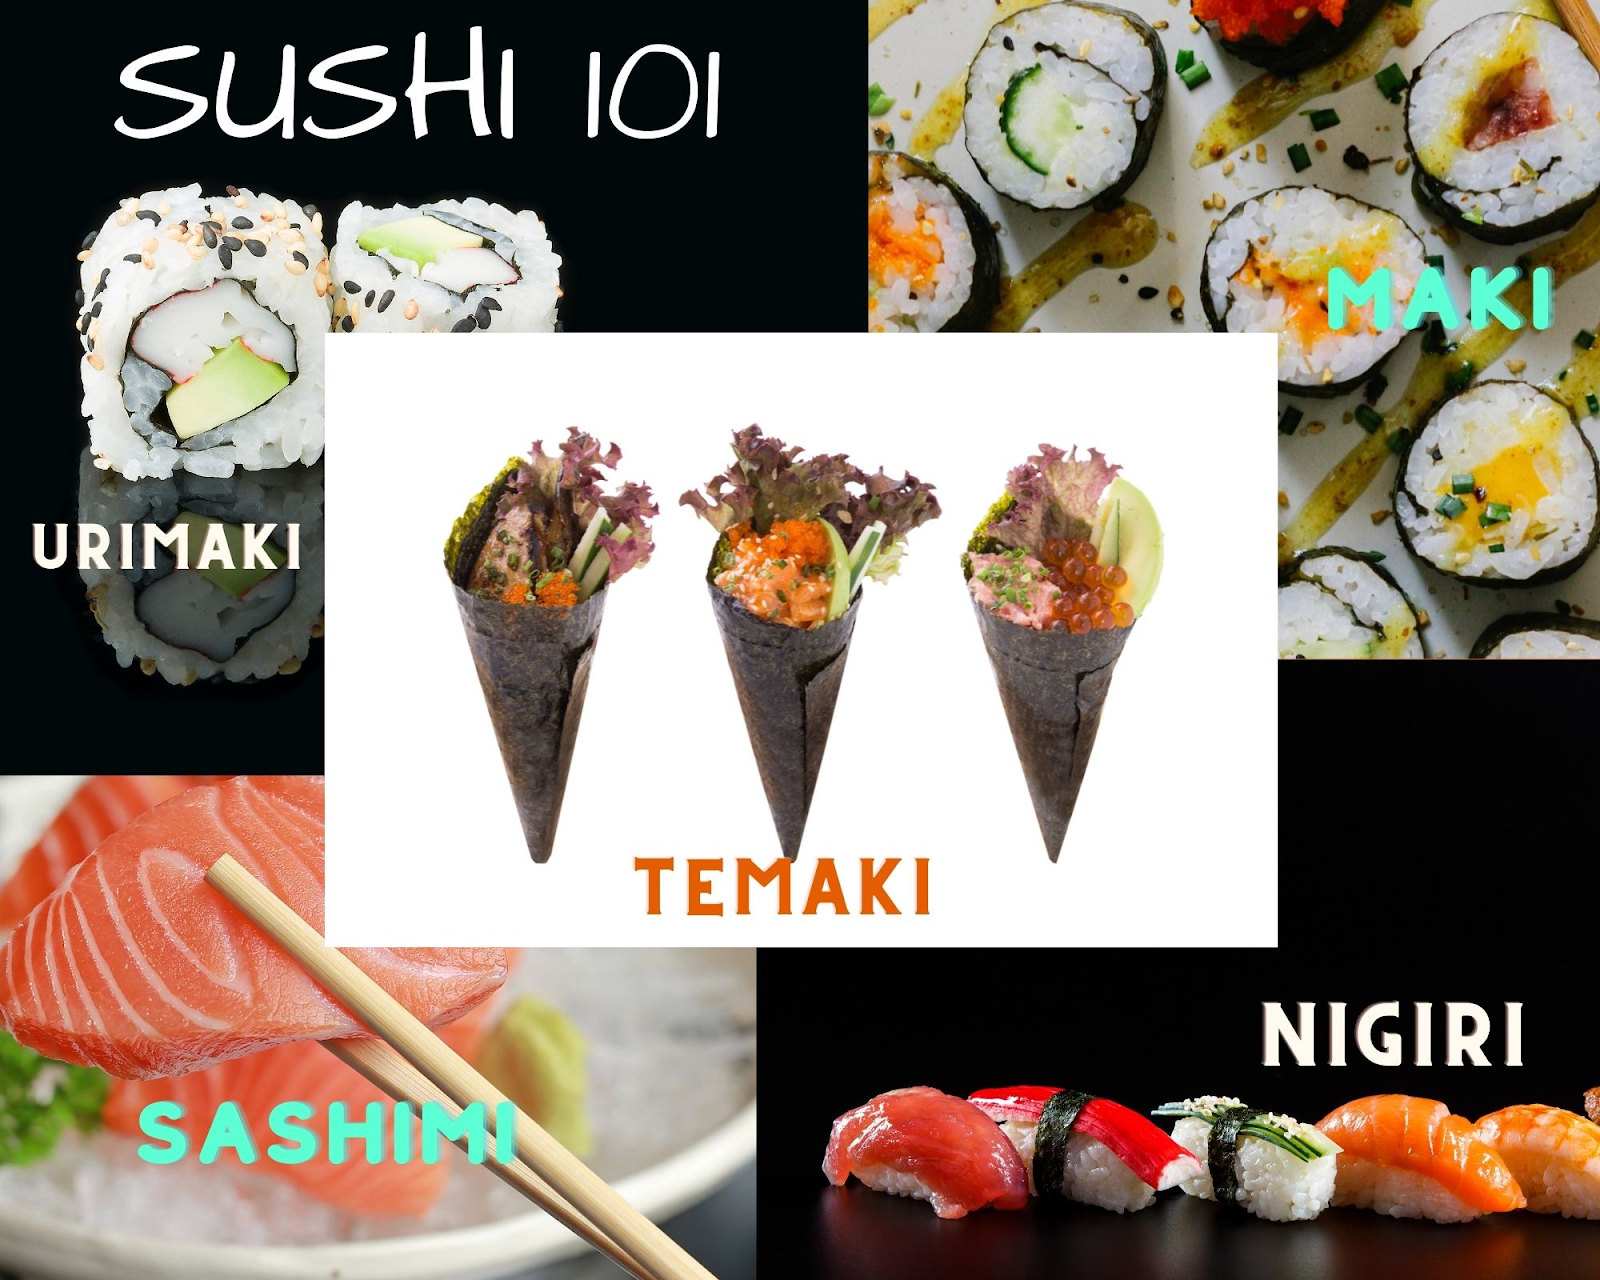 This helpful info-graphic visualizes different terms visitors are likely to see on a sushi menu.